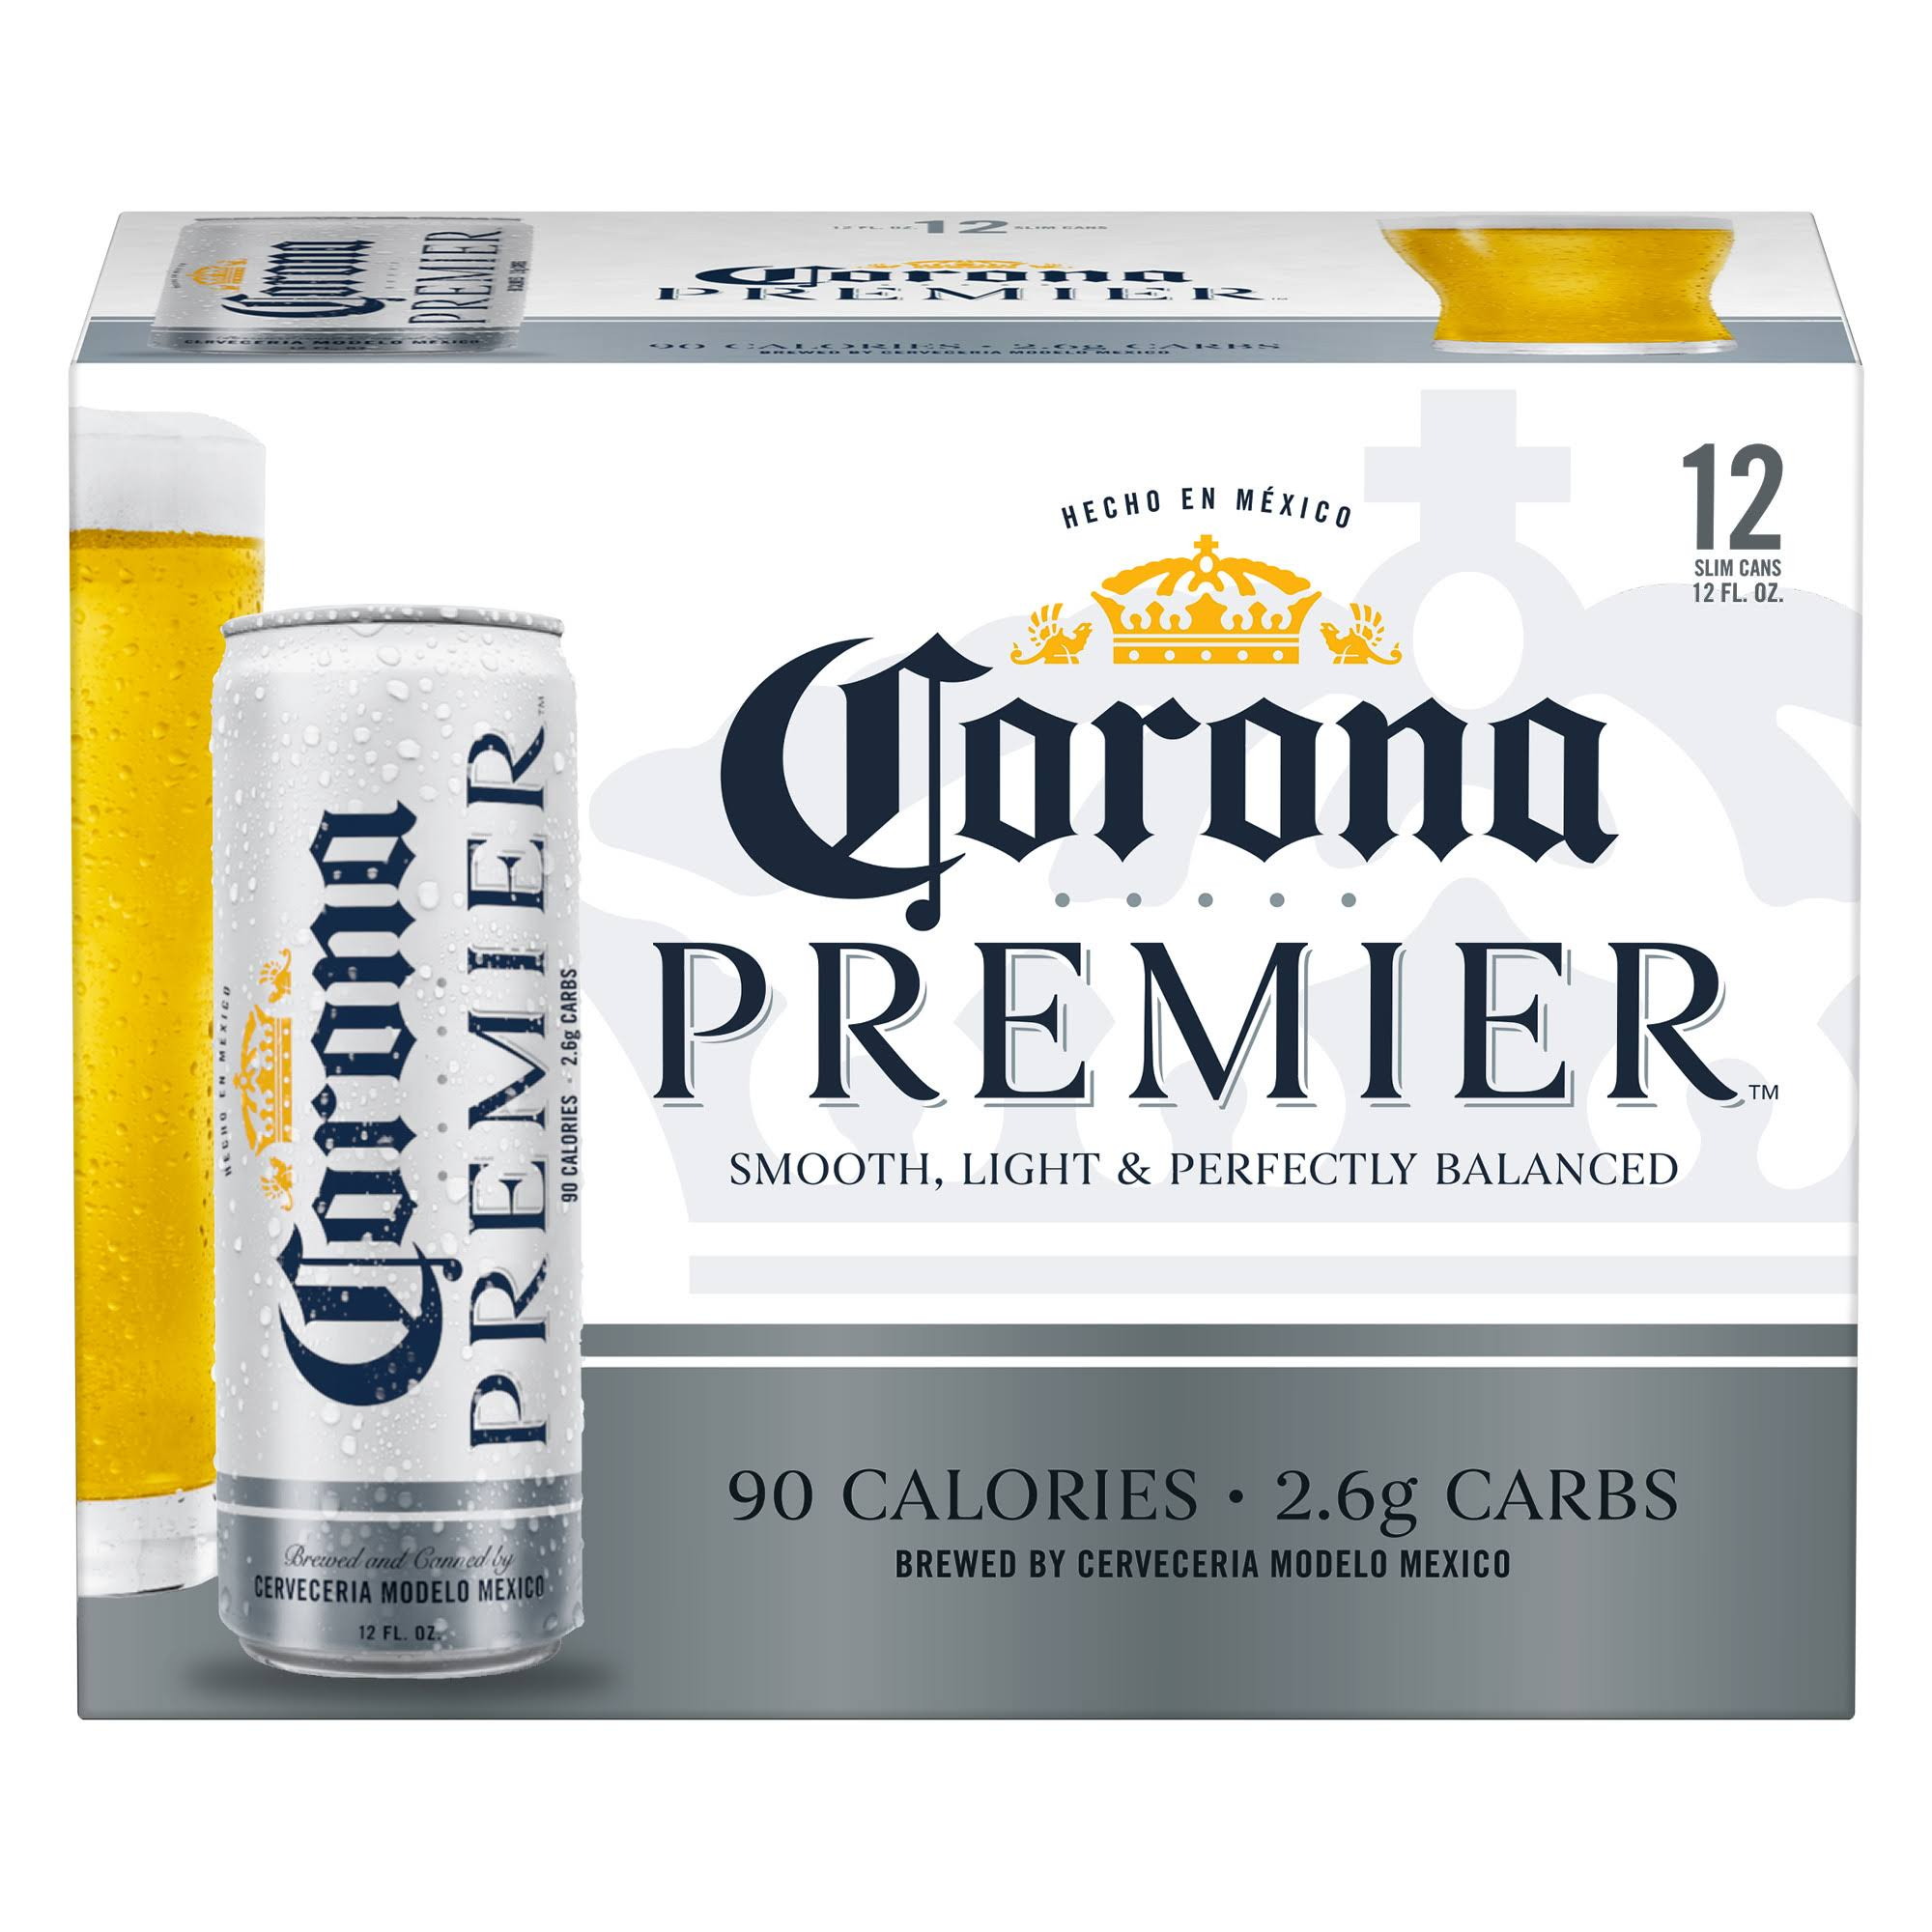 Corona Premier Beer - 12 pack, 12 fl oz slim cans